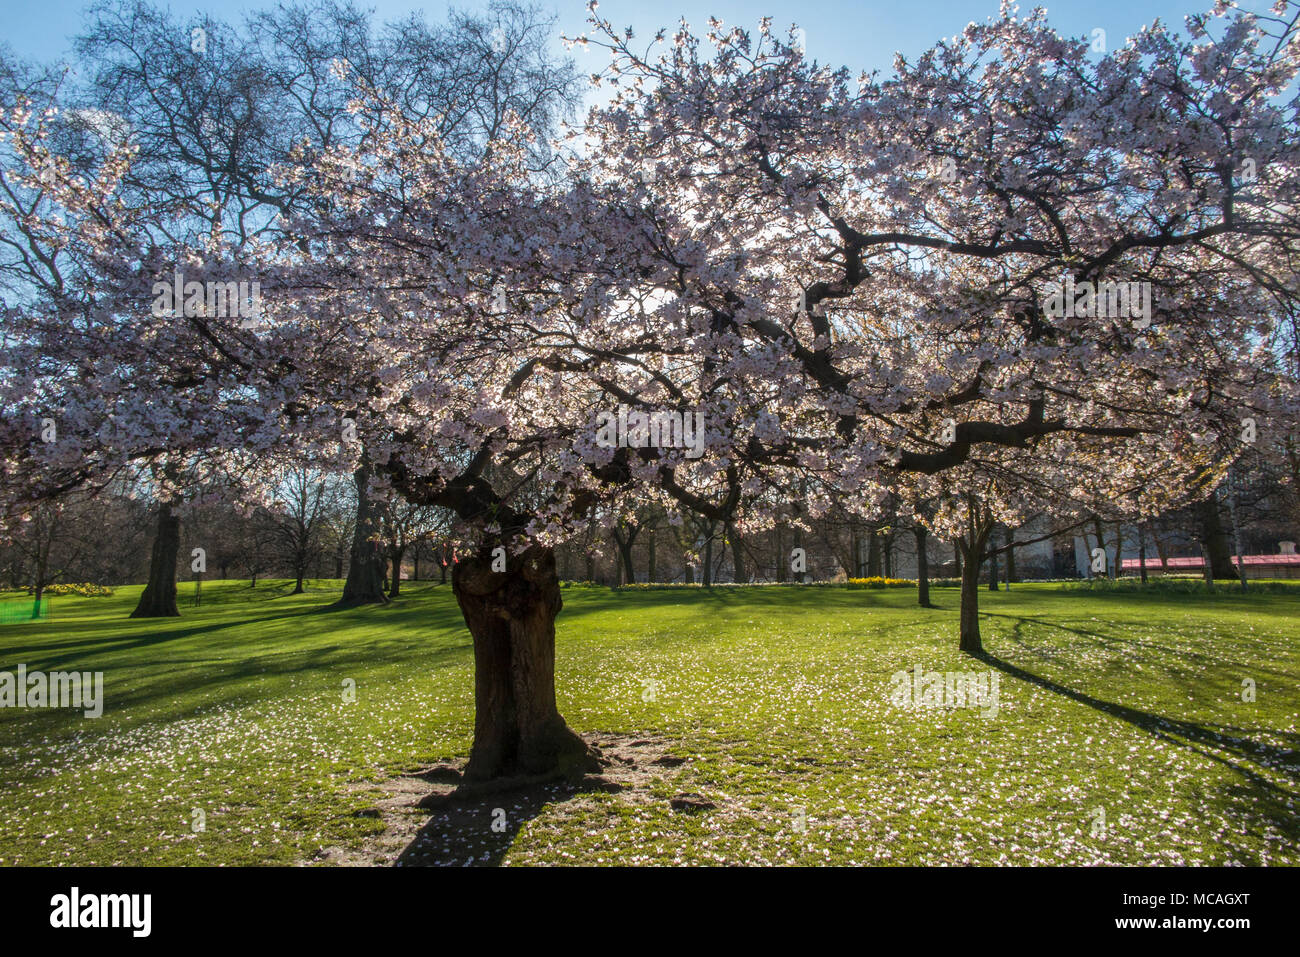 A green parakeet in St James Park, feeding on the spring blossom - Stock Image